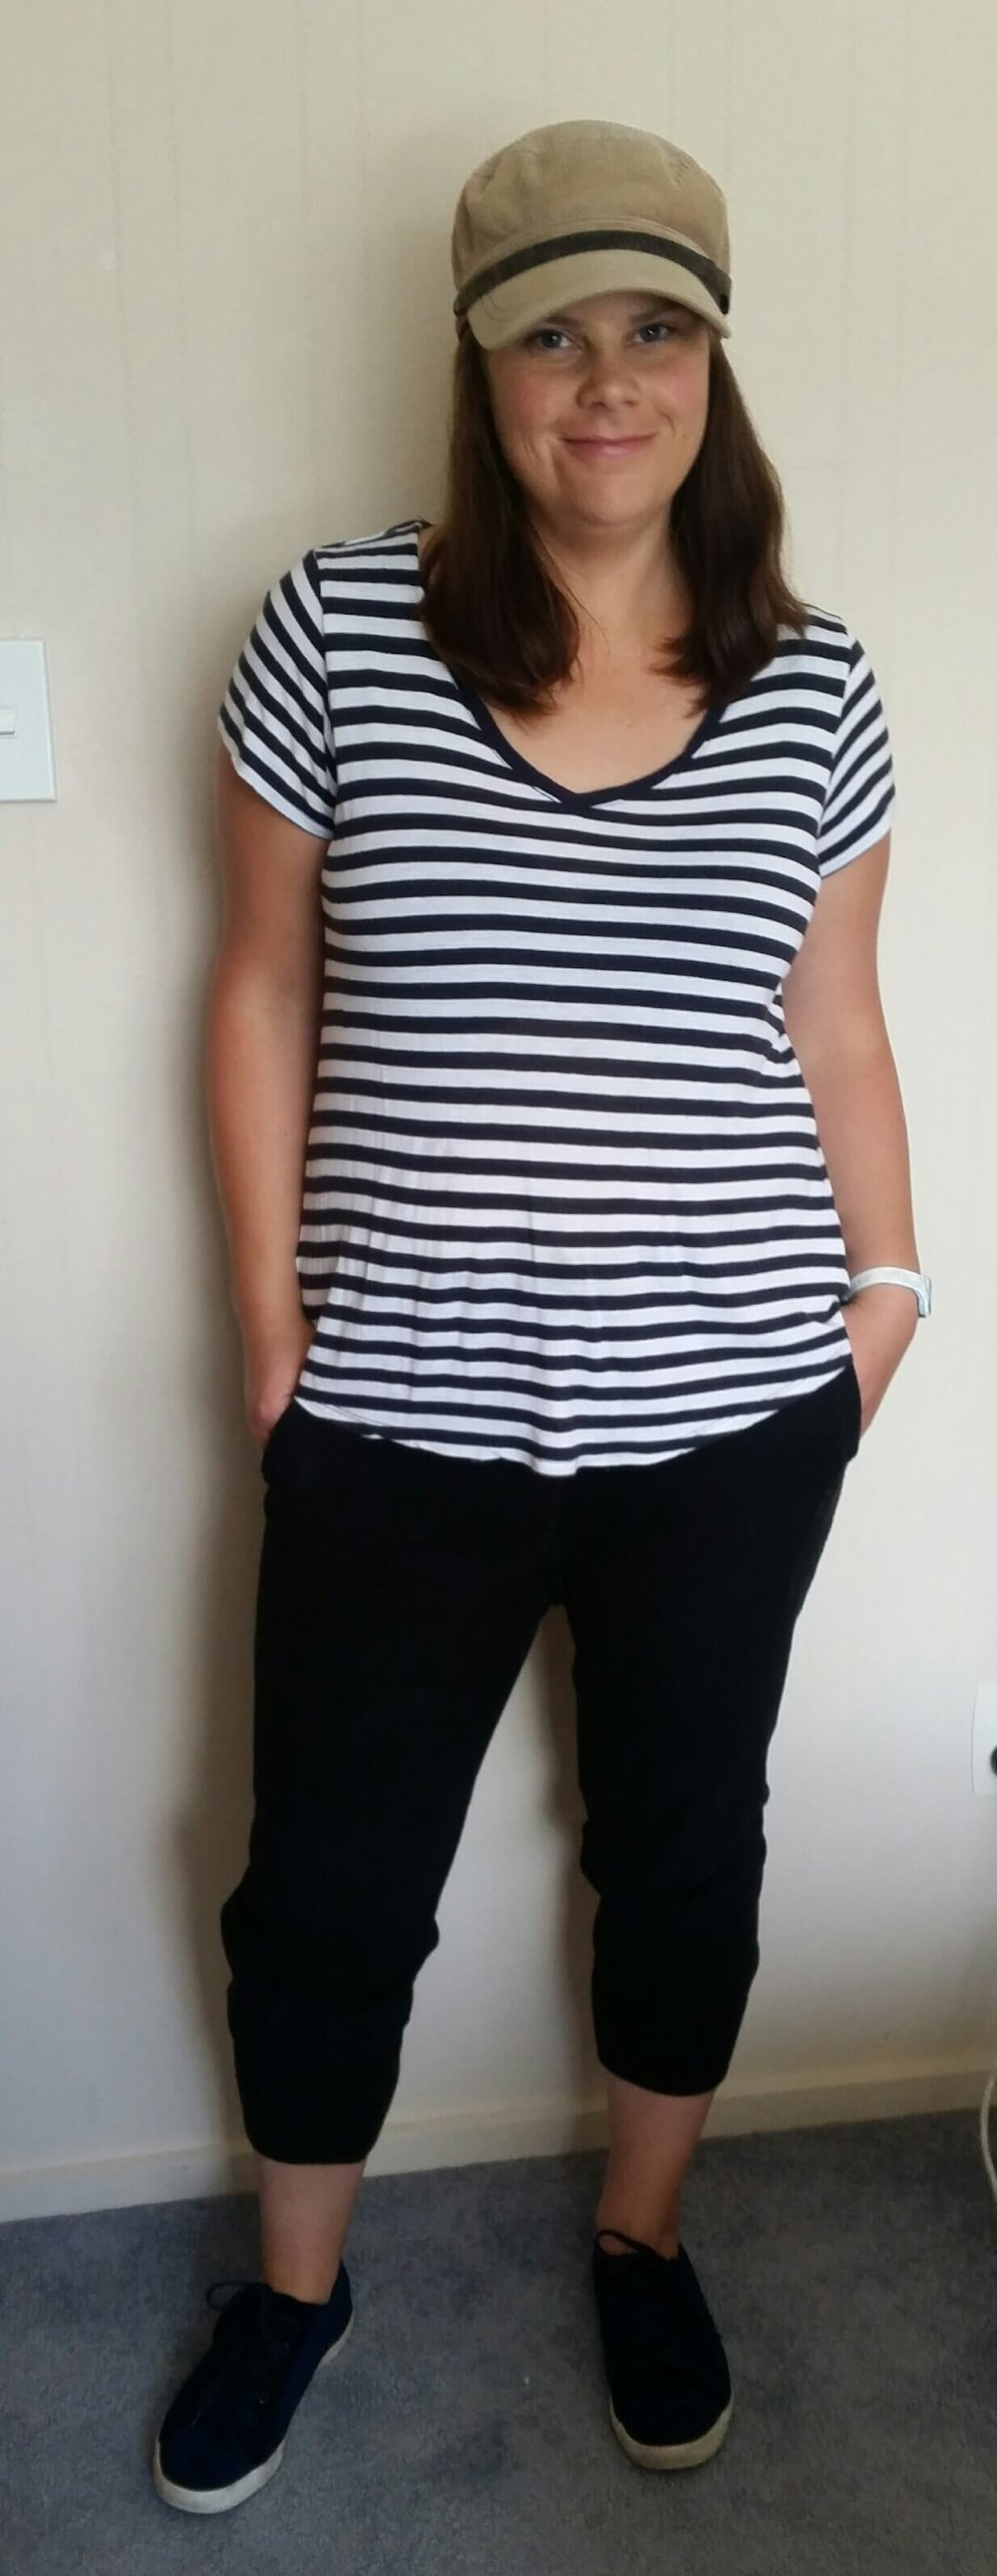 Credit: Angelene in  Frumpy Fighters   Joggers + Striped Tee + Sneakers + Hat